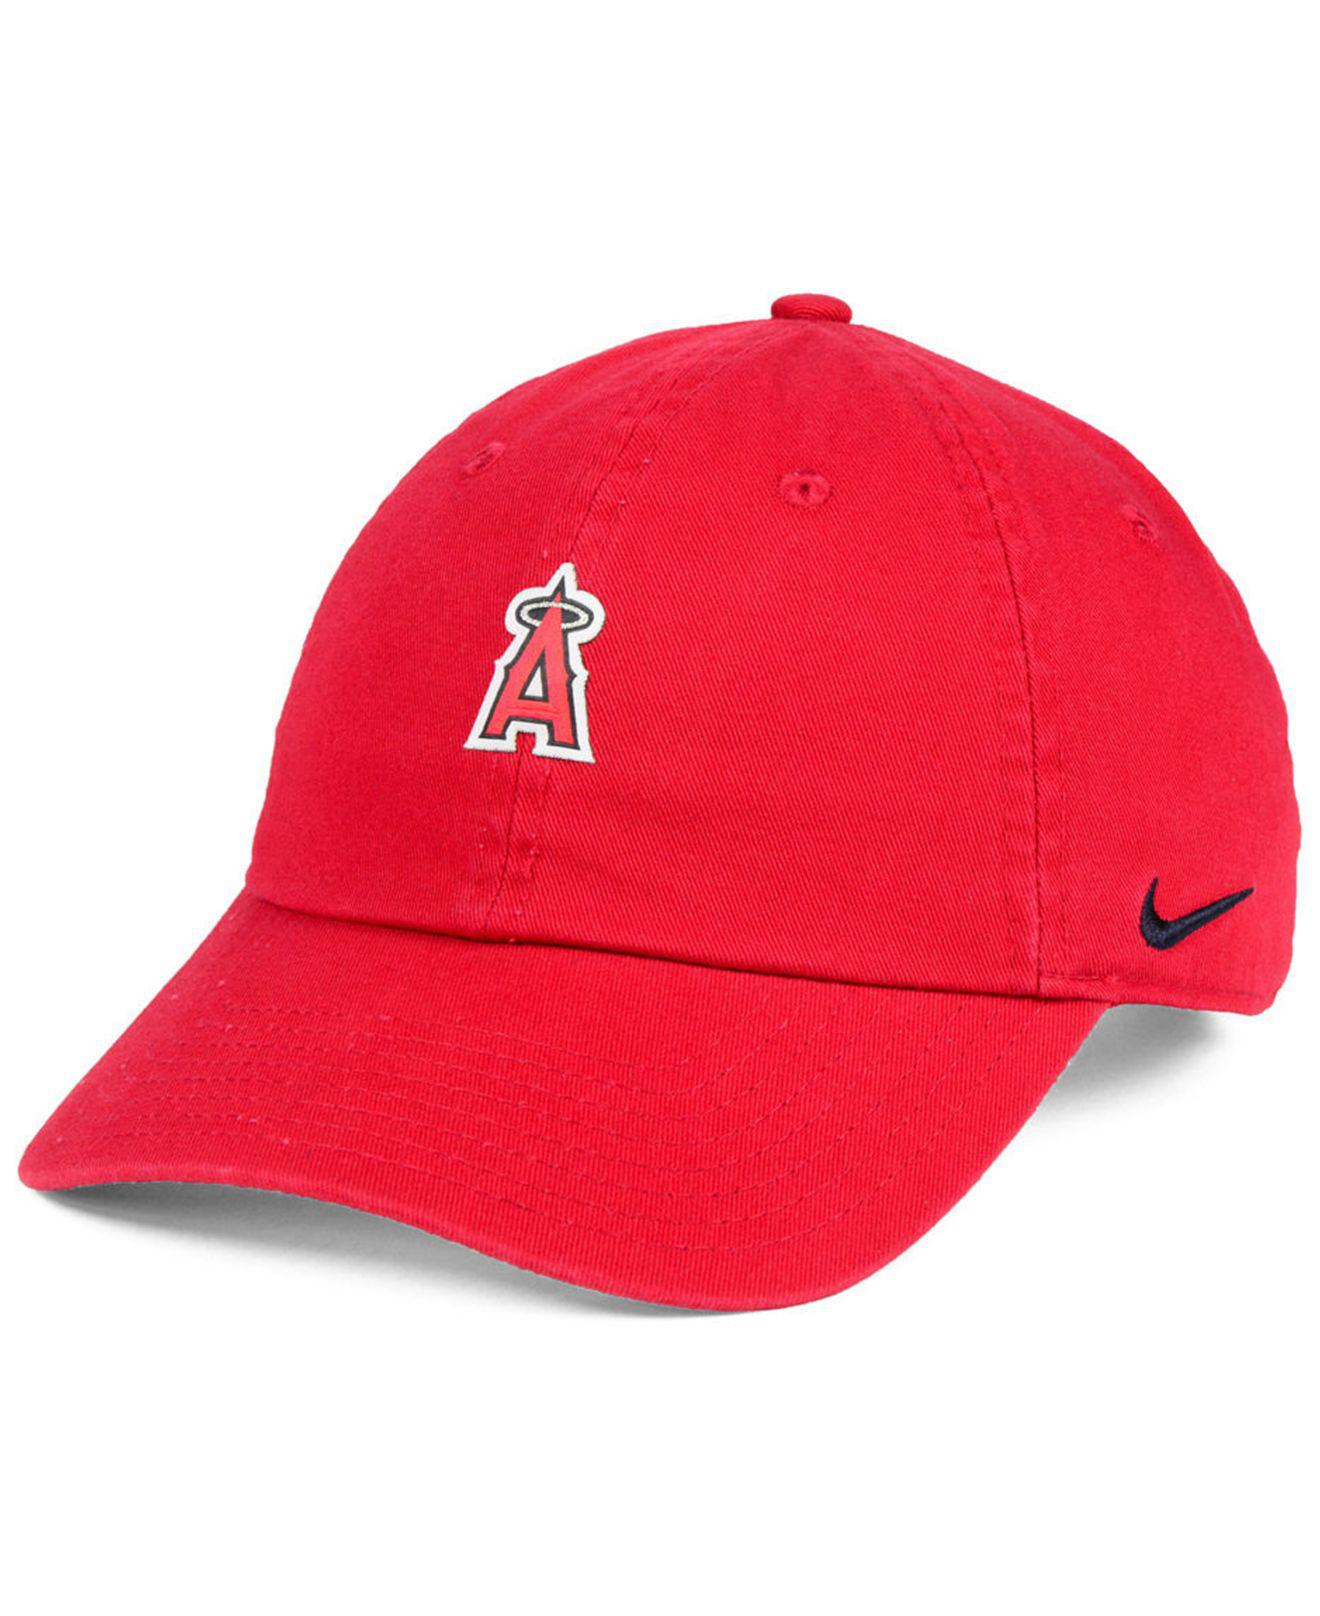 Lyst - Nike Los Angeles Angels Micro Cap in Red for Men 570a51561450